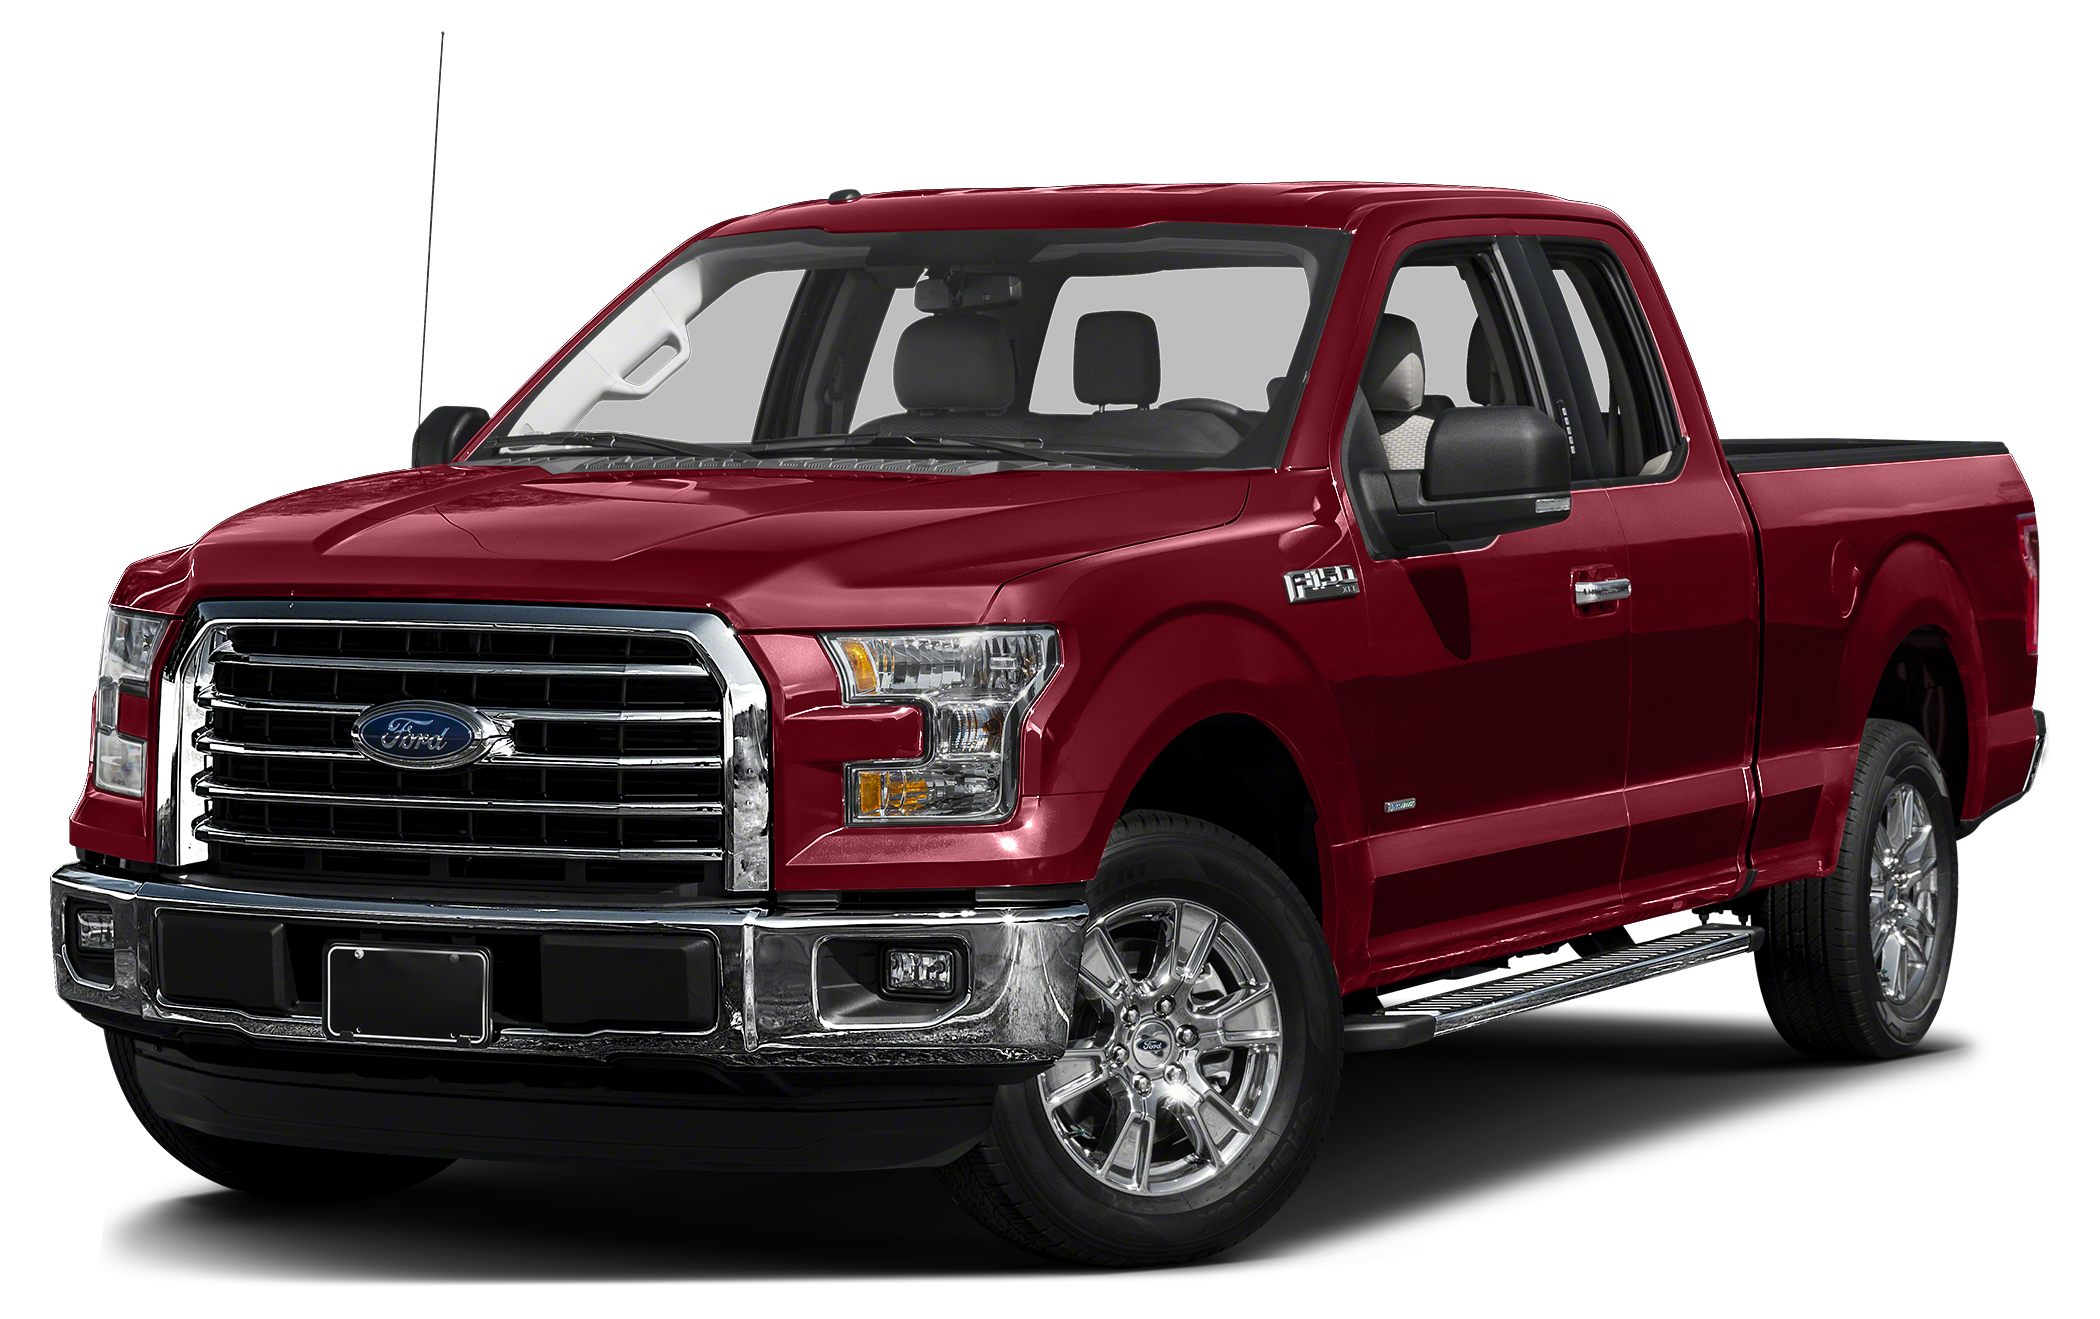 2015 Ford F-150 XLT Ford F-150 capability is legendary in the world of hardworking pickups But th